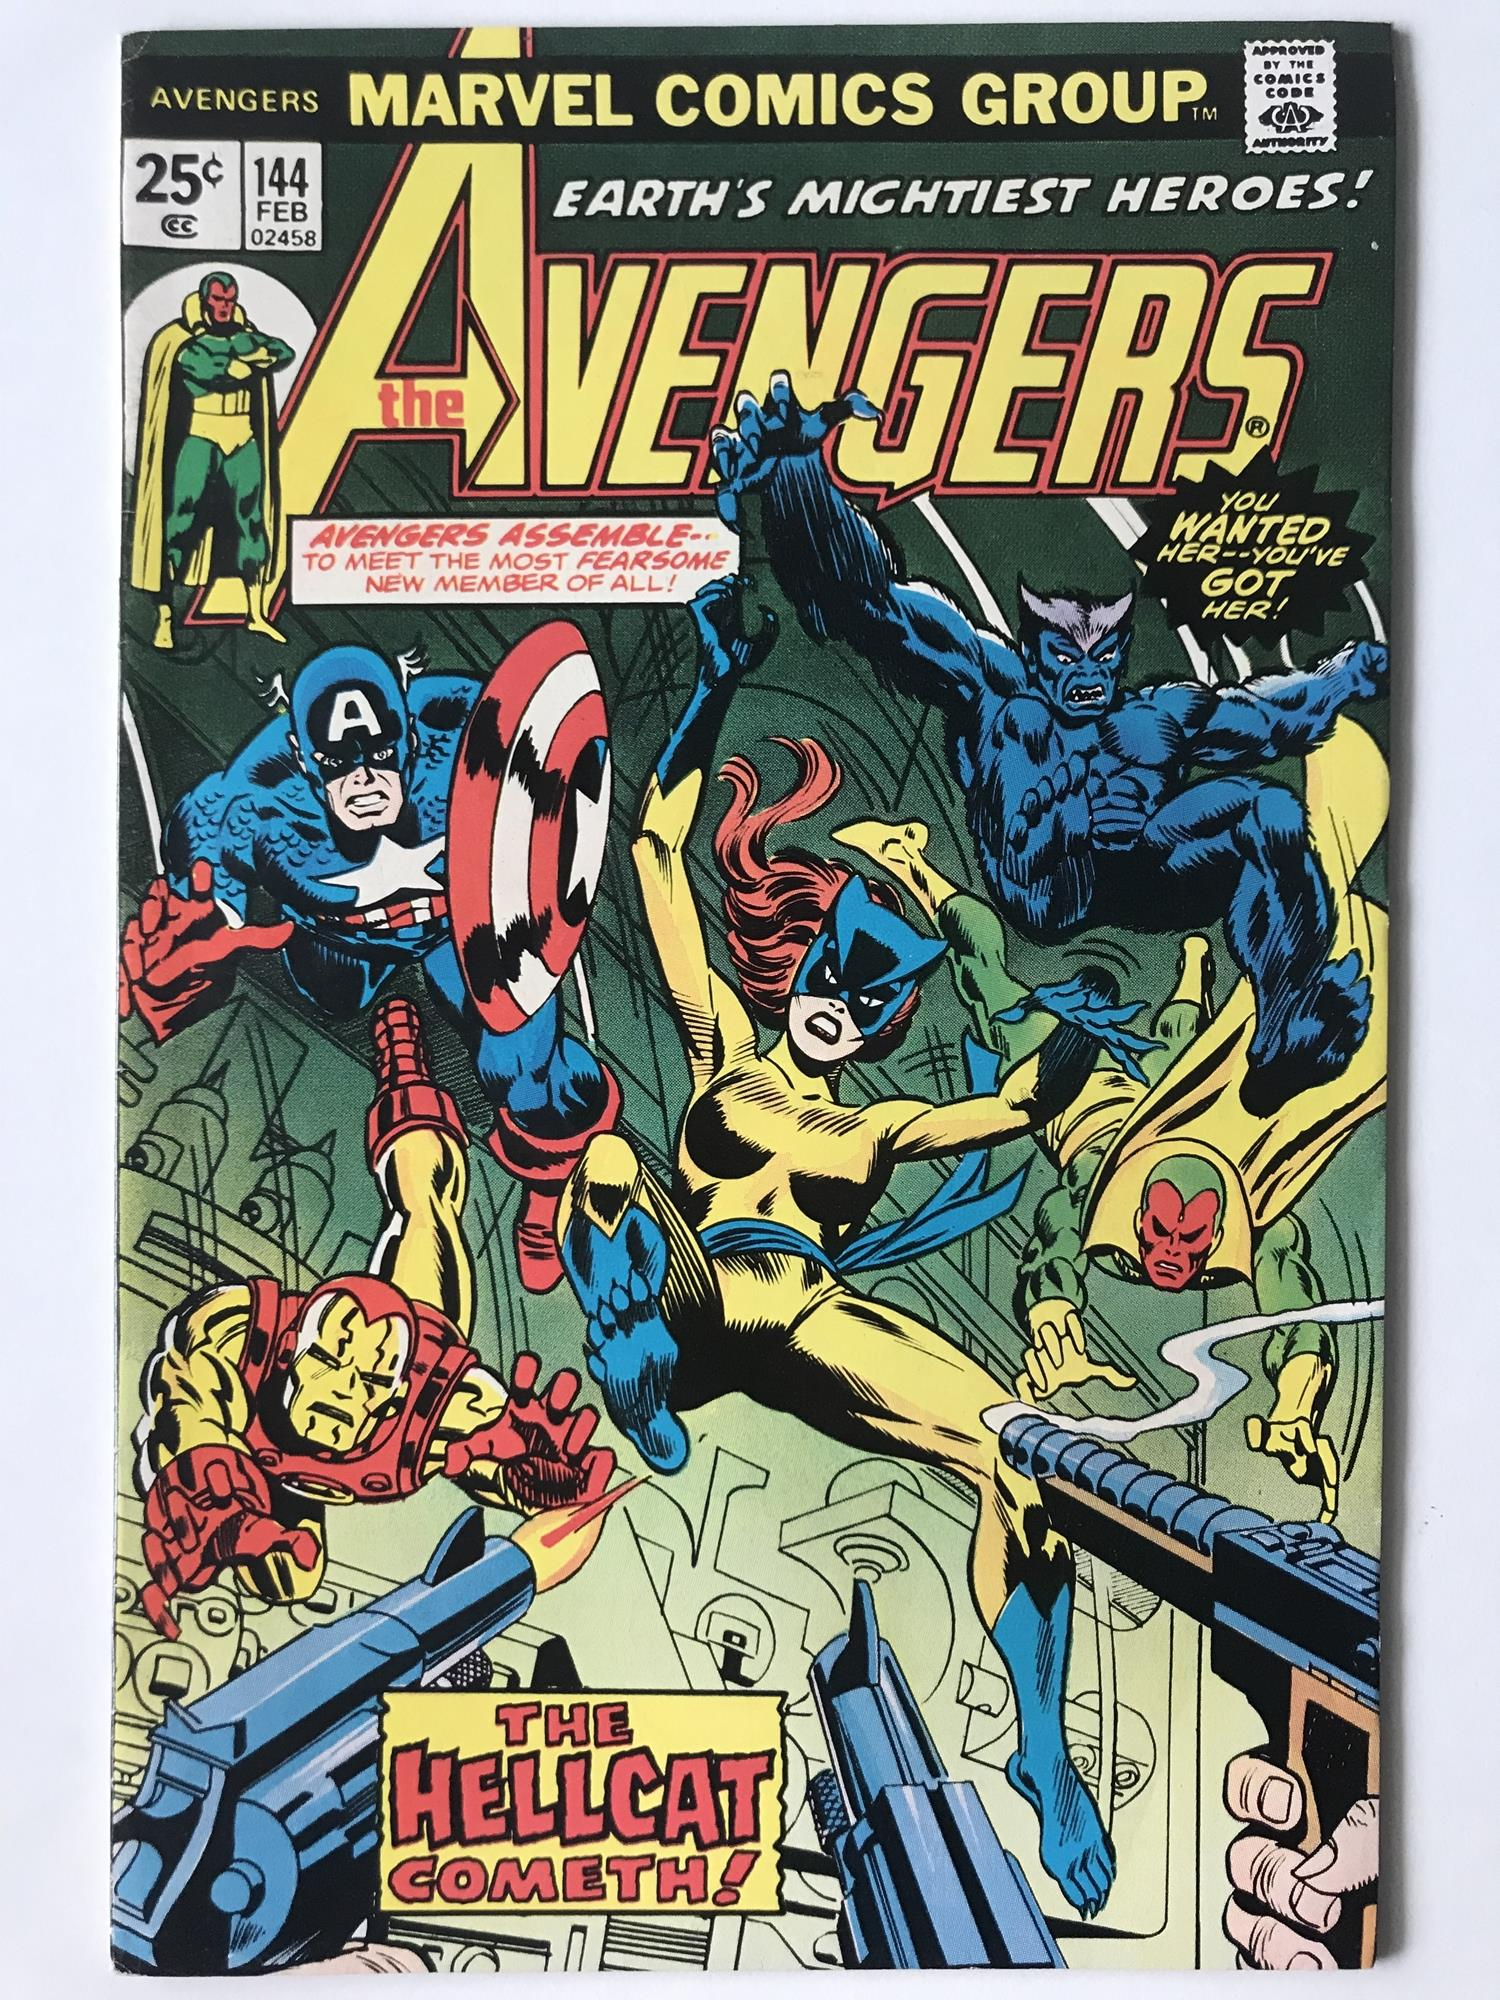 Lot 45 - AVENGERS # 144 (1976 - MARVEL - Cents Copy) - Origin and first appearance of Hellcat (Patsy Walker